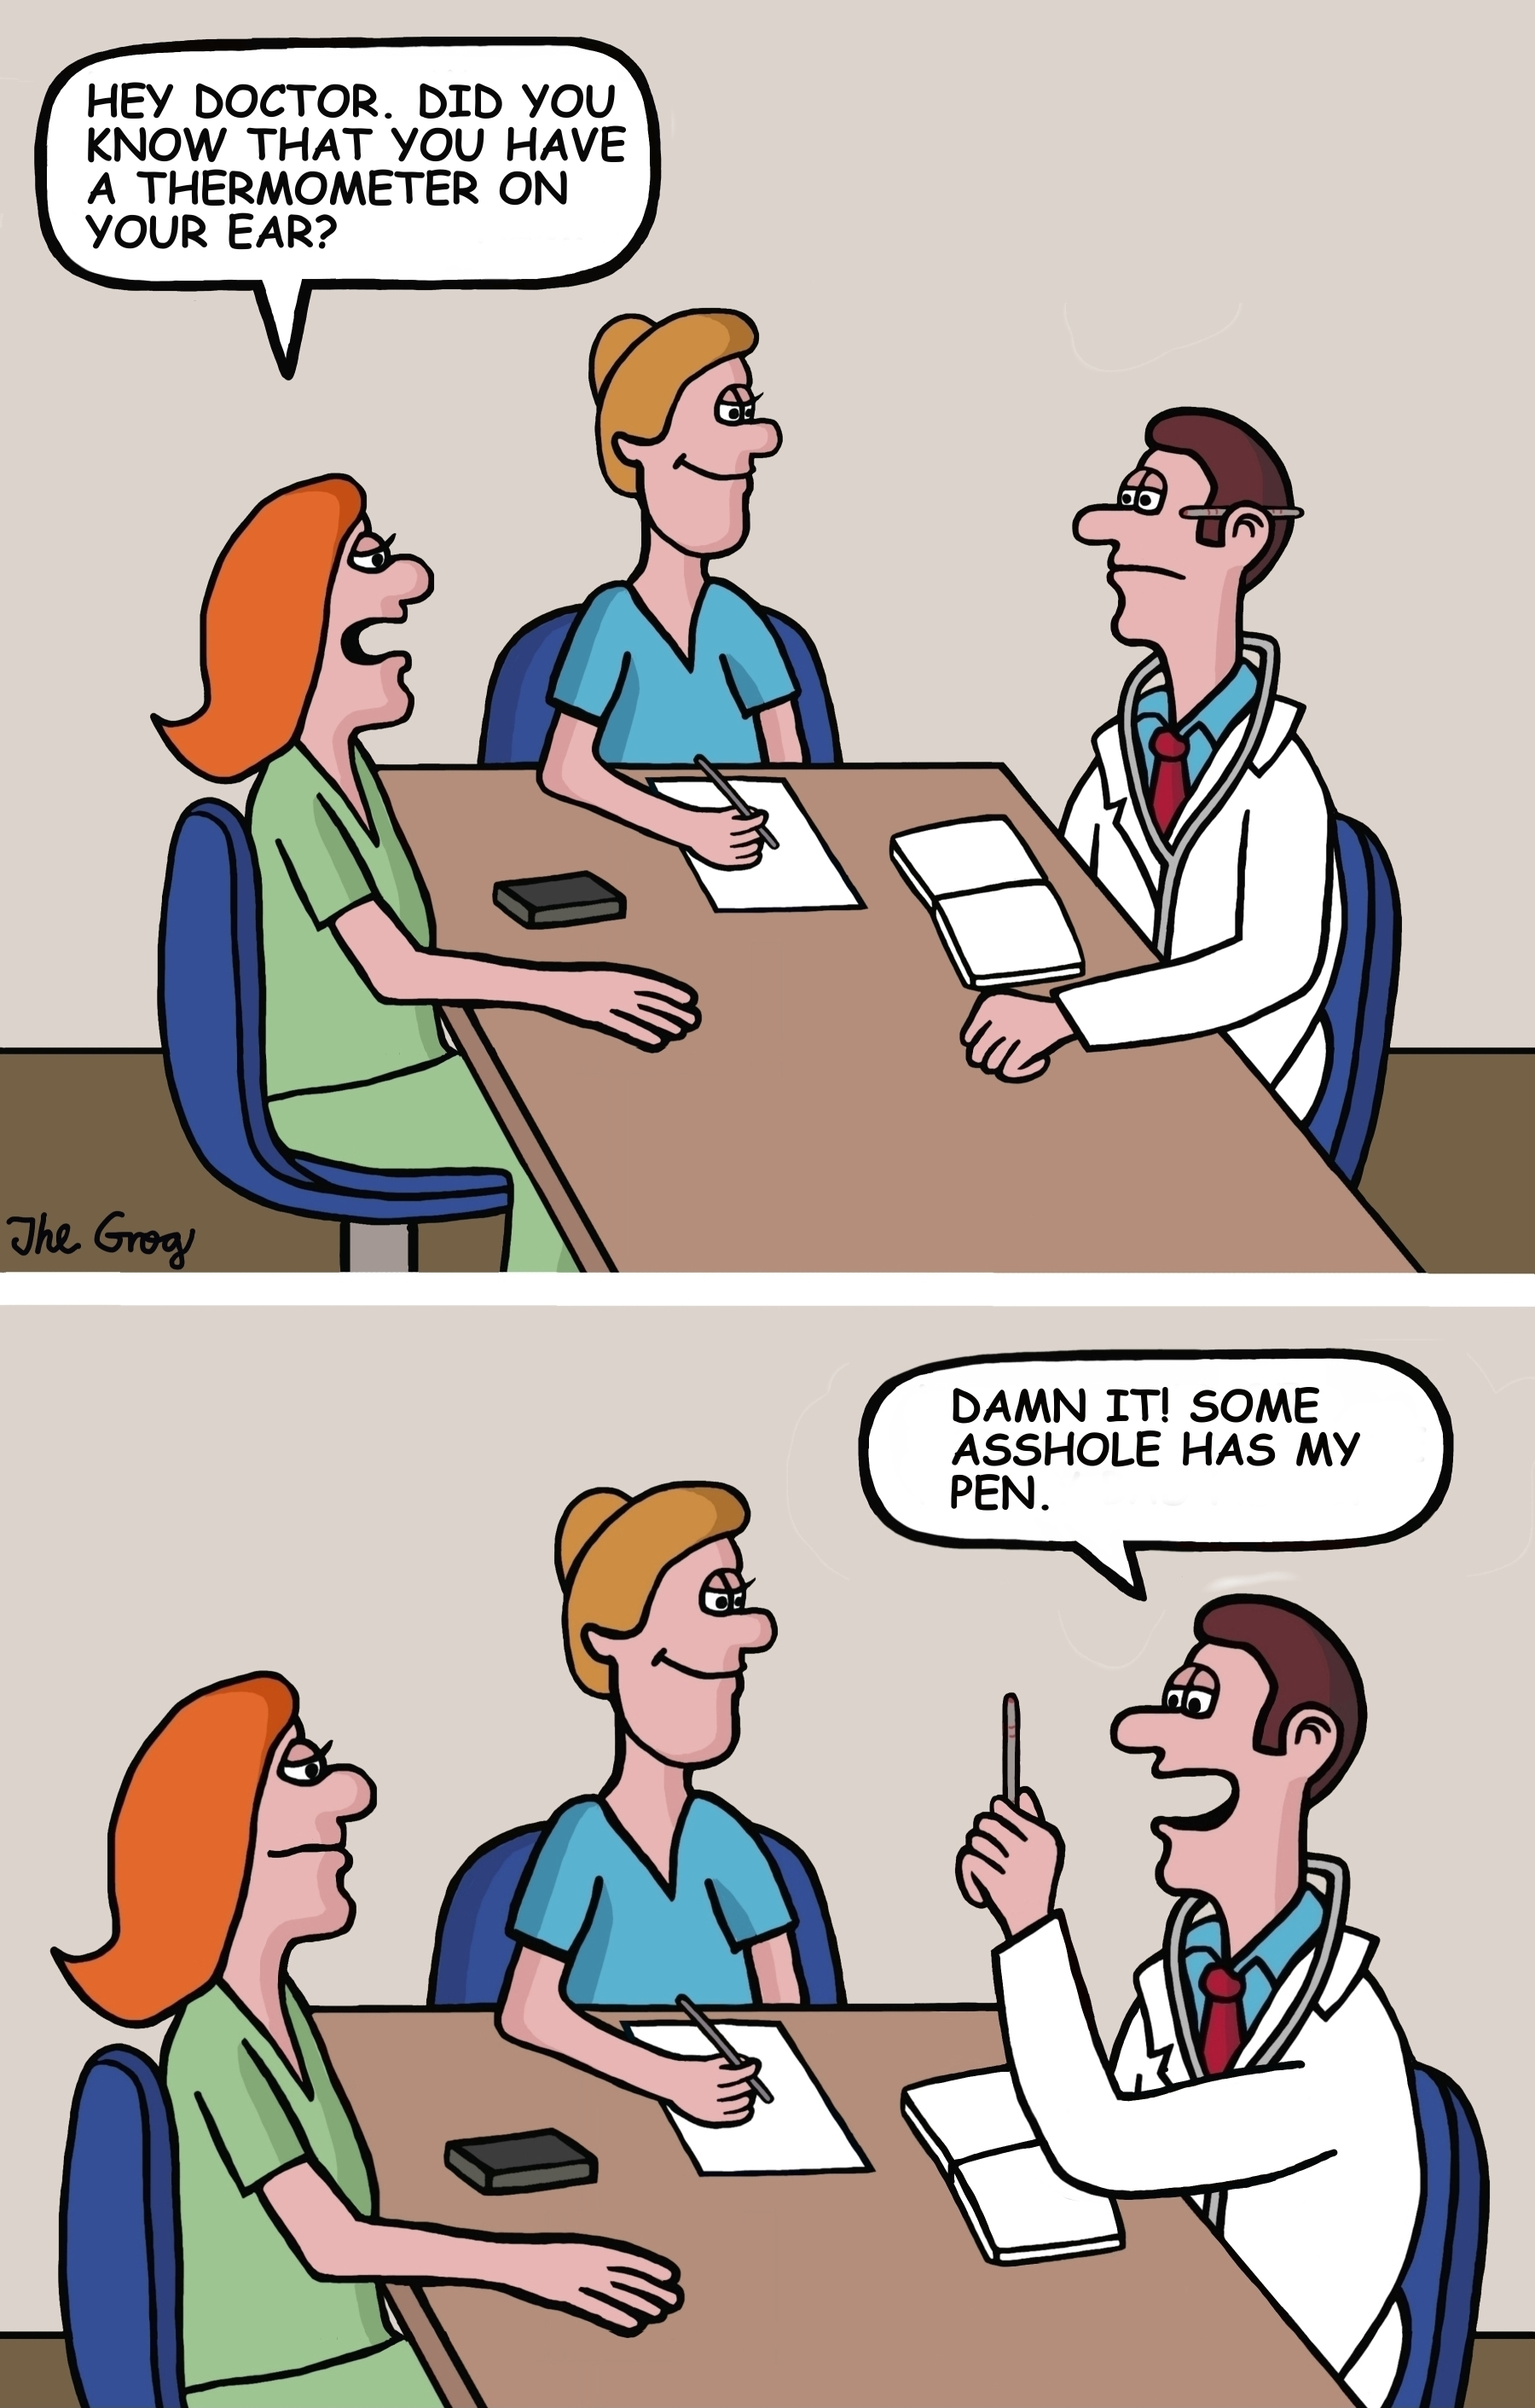 """A doctor is having a meeting with two members of his staff. A nurse says, """"Hey doctor, Did you know that you have a thermometer on your ear."""" The doctor says, """"Damn it! Some a hole has my pen."""""""